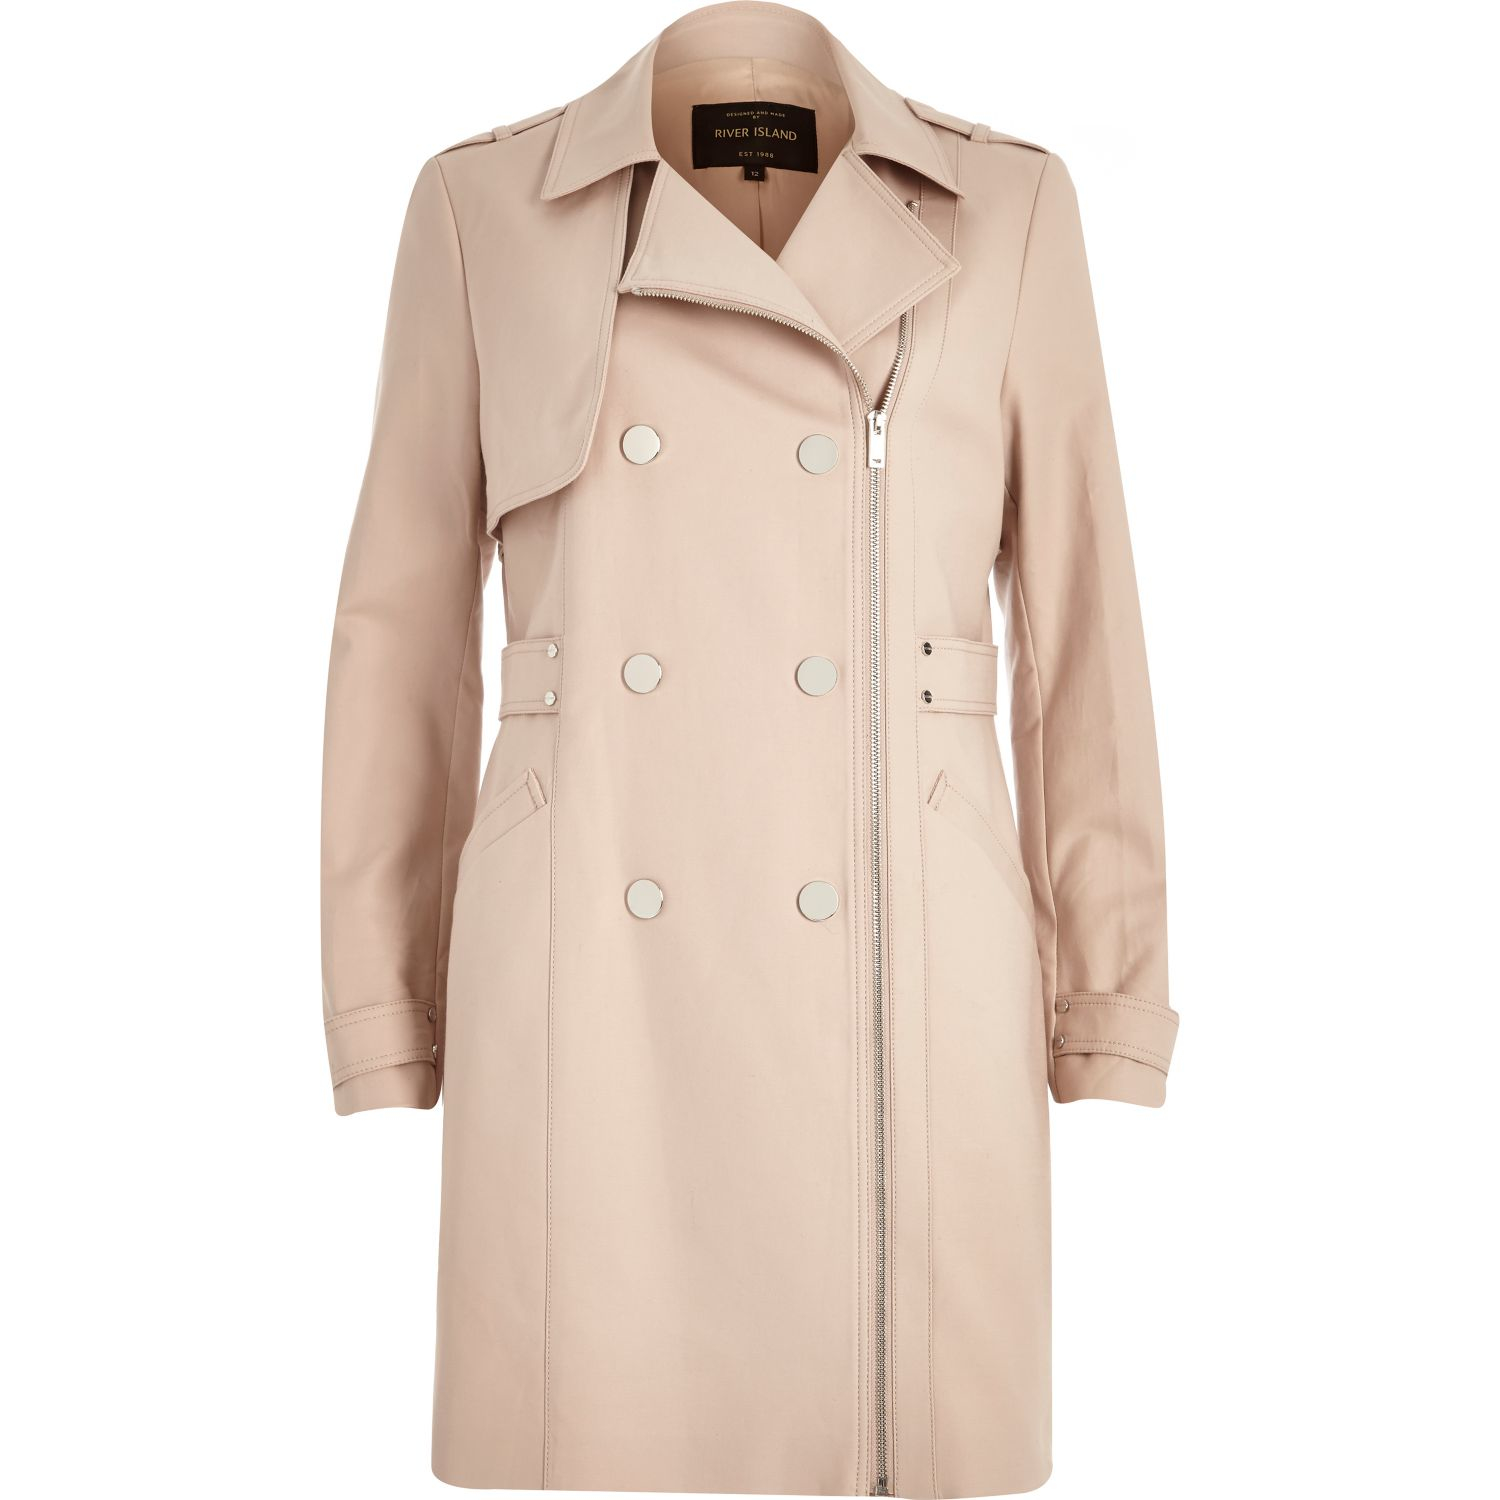 River island Light Pink Smart Zip-up Mac Coat in Natural | Lyst